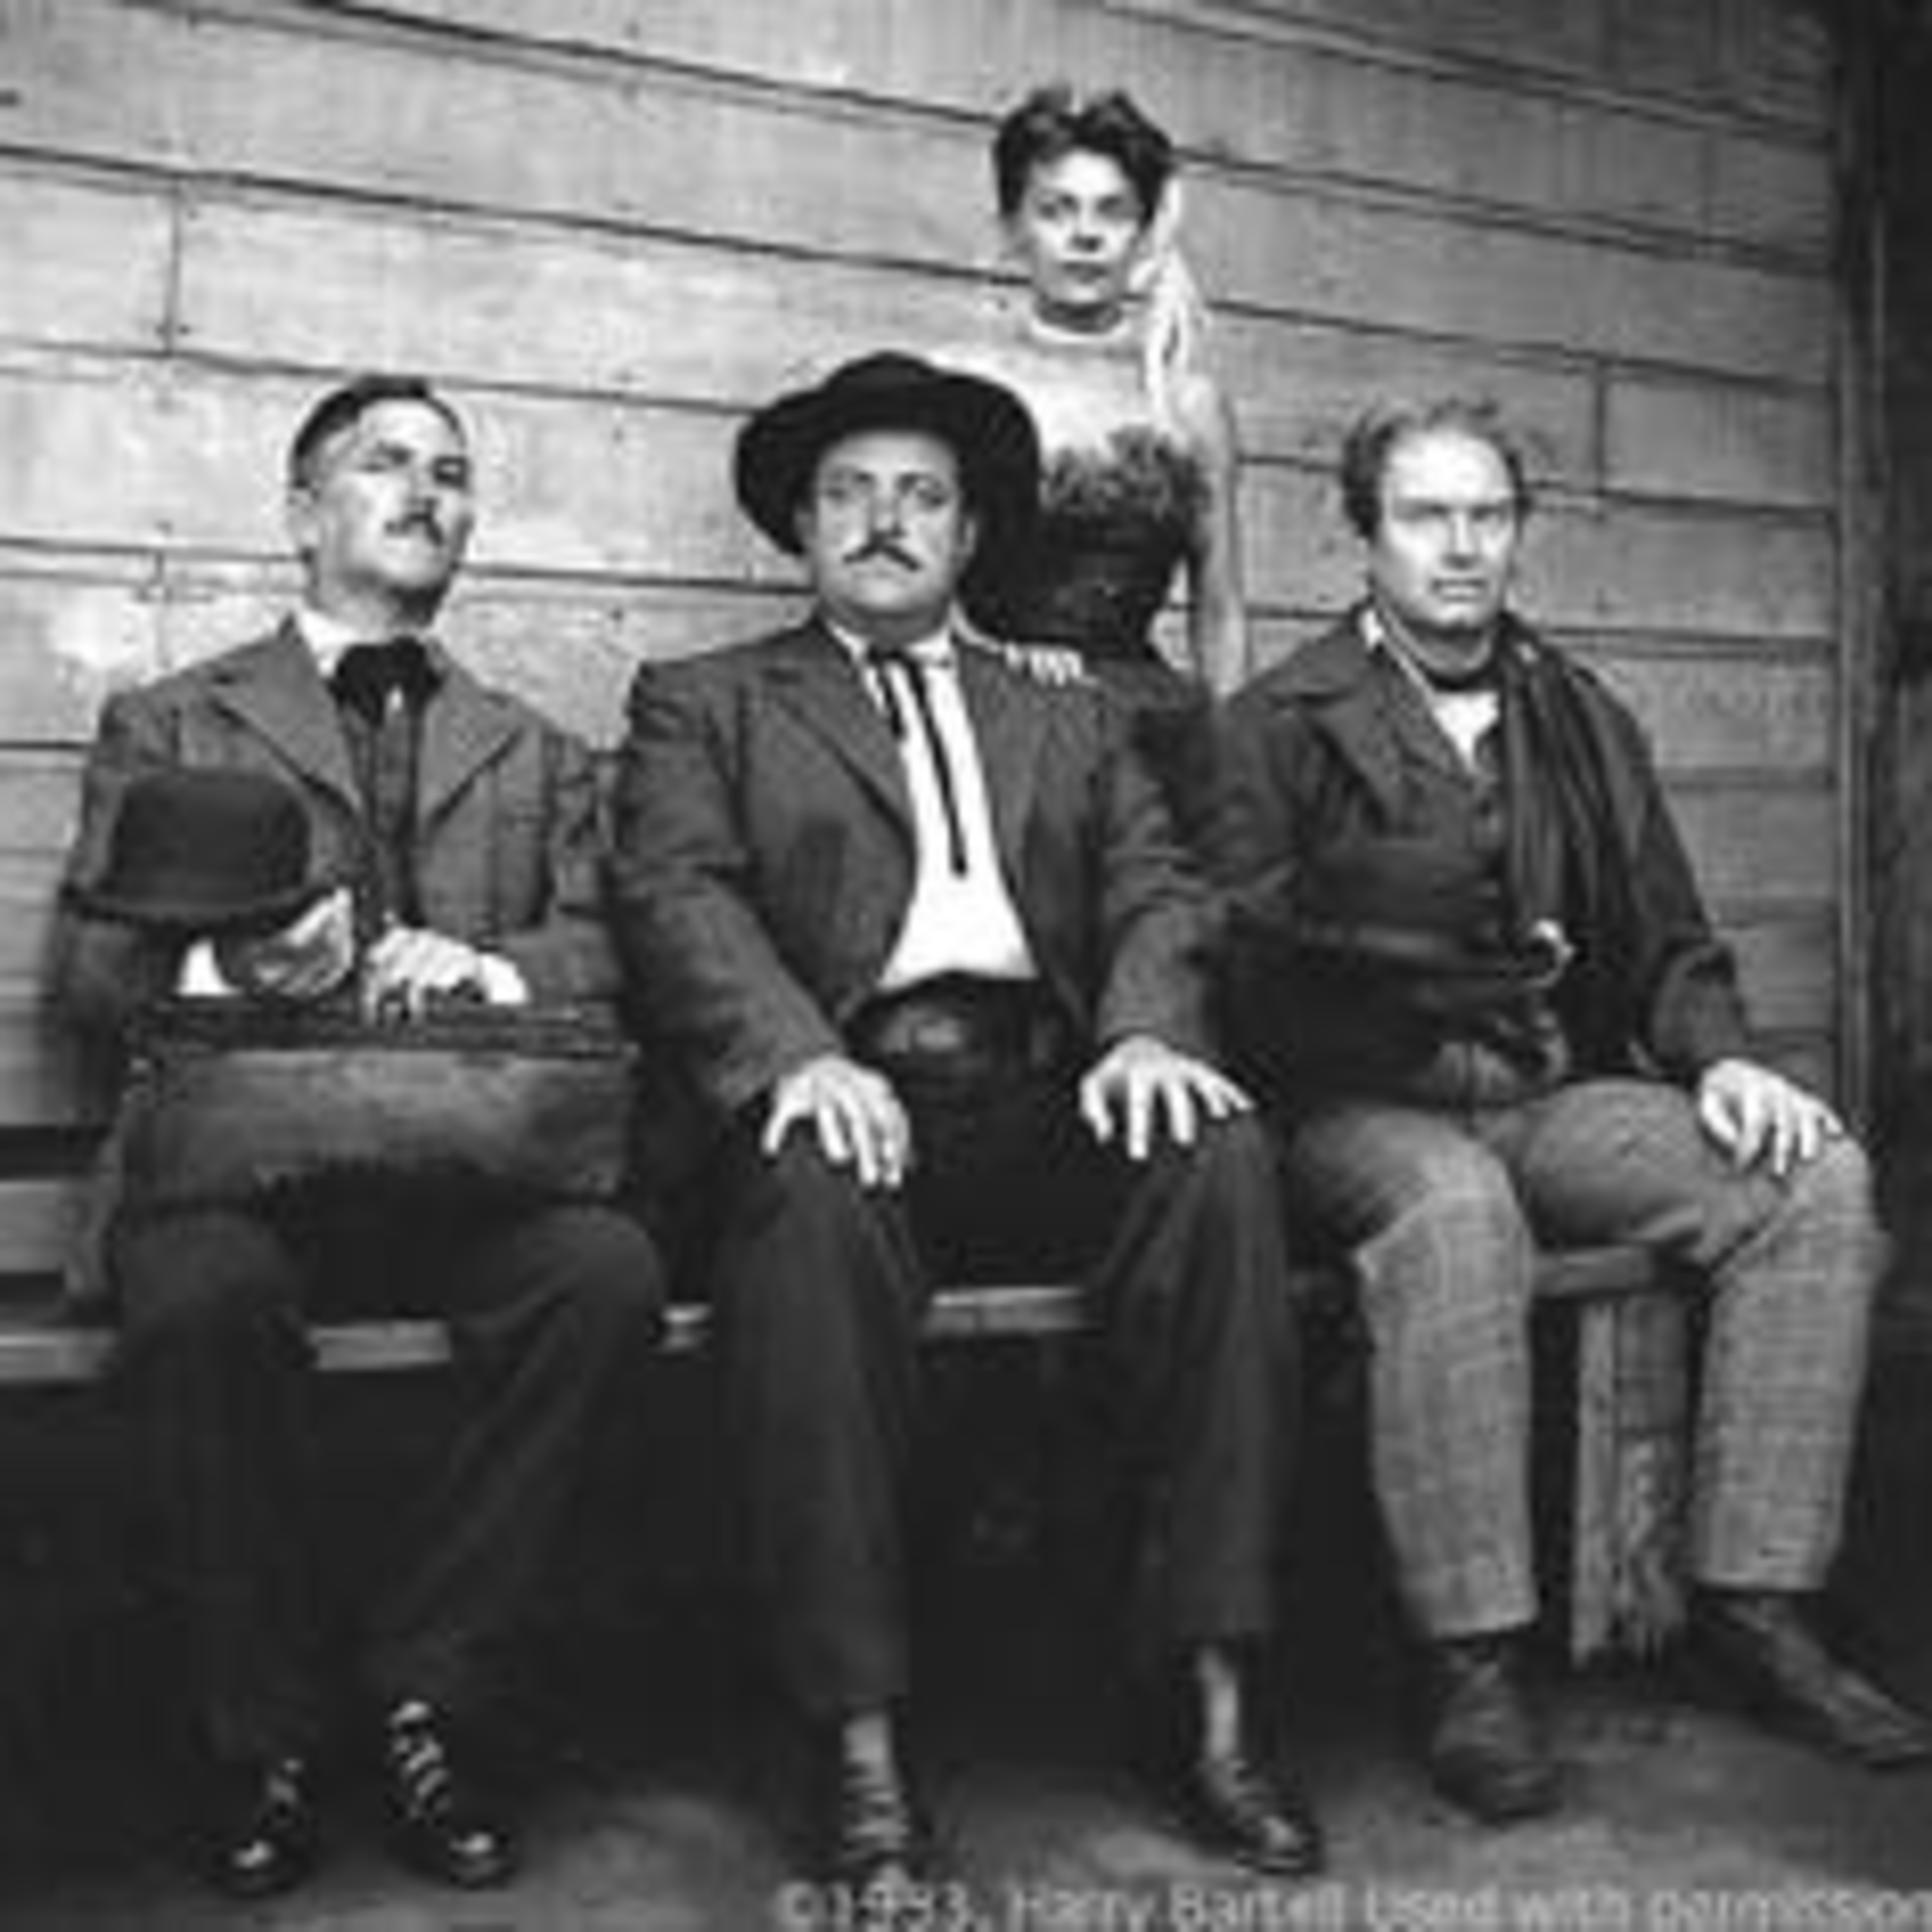 The Gunsmoke Podcast - Moon - Gone Straight - Radio's Last Great Dramatic Series - Episodes 69 and 70